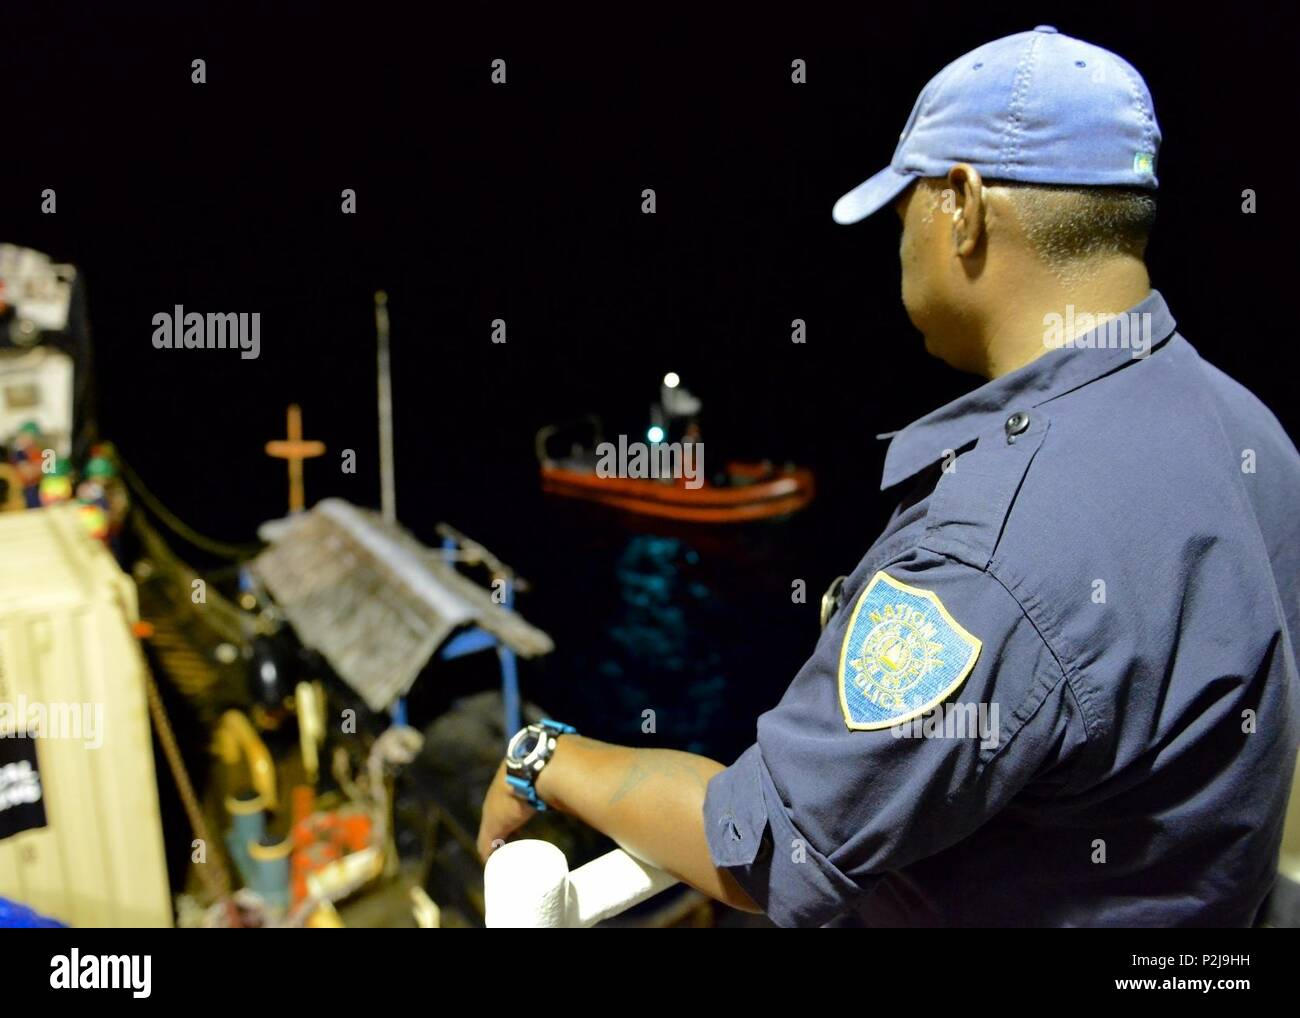 Jim Kloulechad, a Palau National Police officer, observes the crew of the U.S. Coast Guard buoy tender cutter USCGC Sequoia (WLB-215) begin to recover illegal fish aggregating device located in the Palau exclusive economic zone that presented a hazard to navigation Sept. 3, 2016. Fishermen use well lit FADs to attract fish to one spot to catch, a practice which is illegal in the Palau EEZ. (U.S. Coast Guard photo by Chief Petty Officer Sara Mooers) - Stock Image